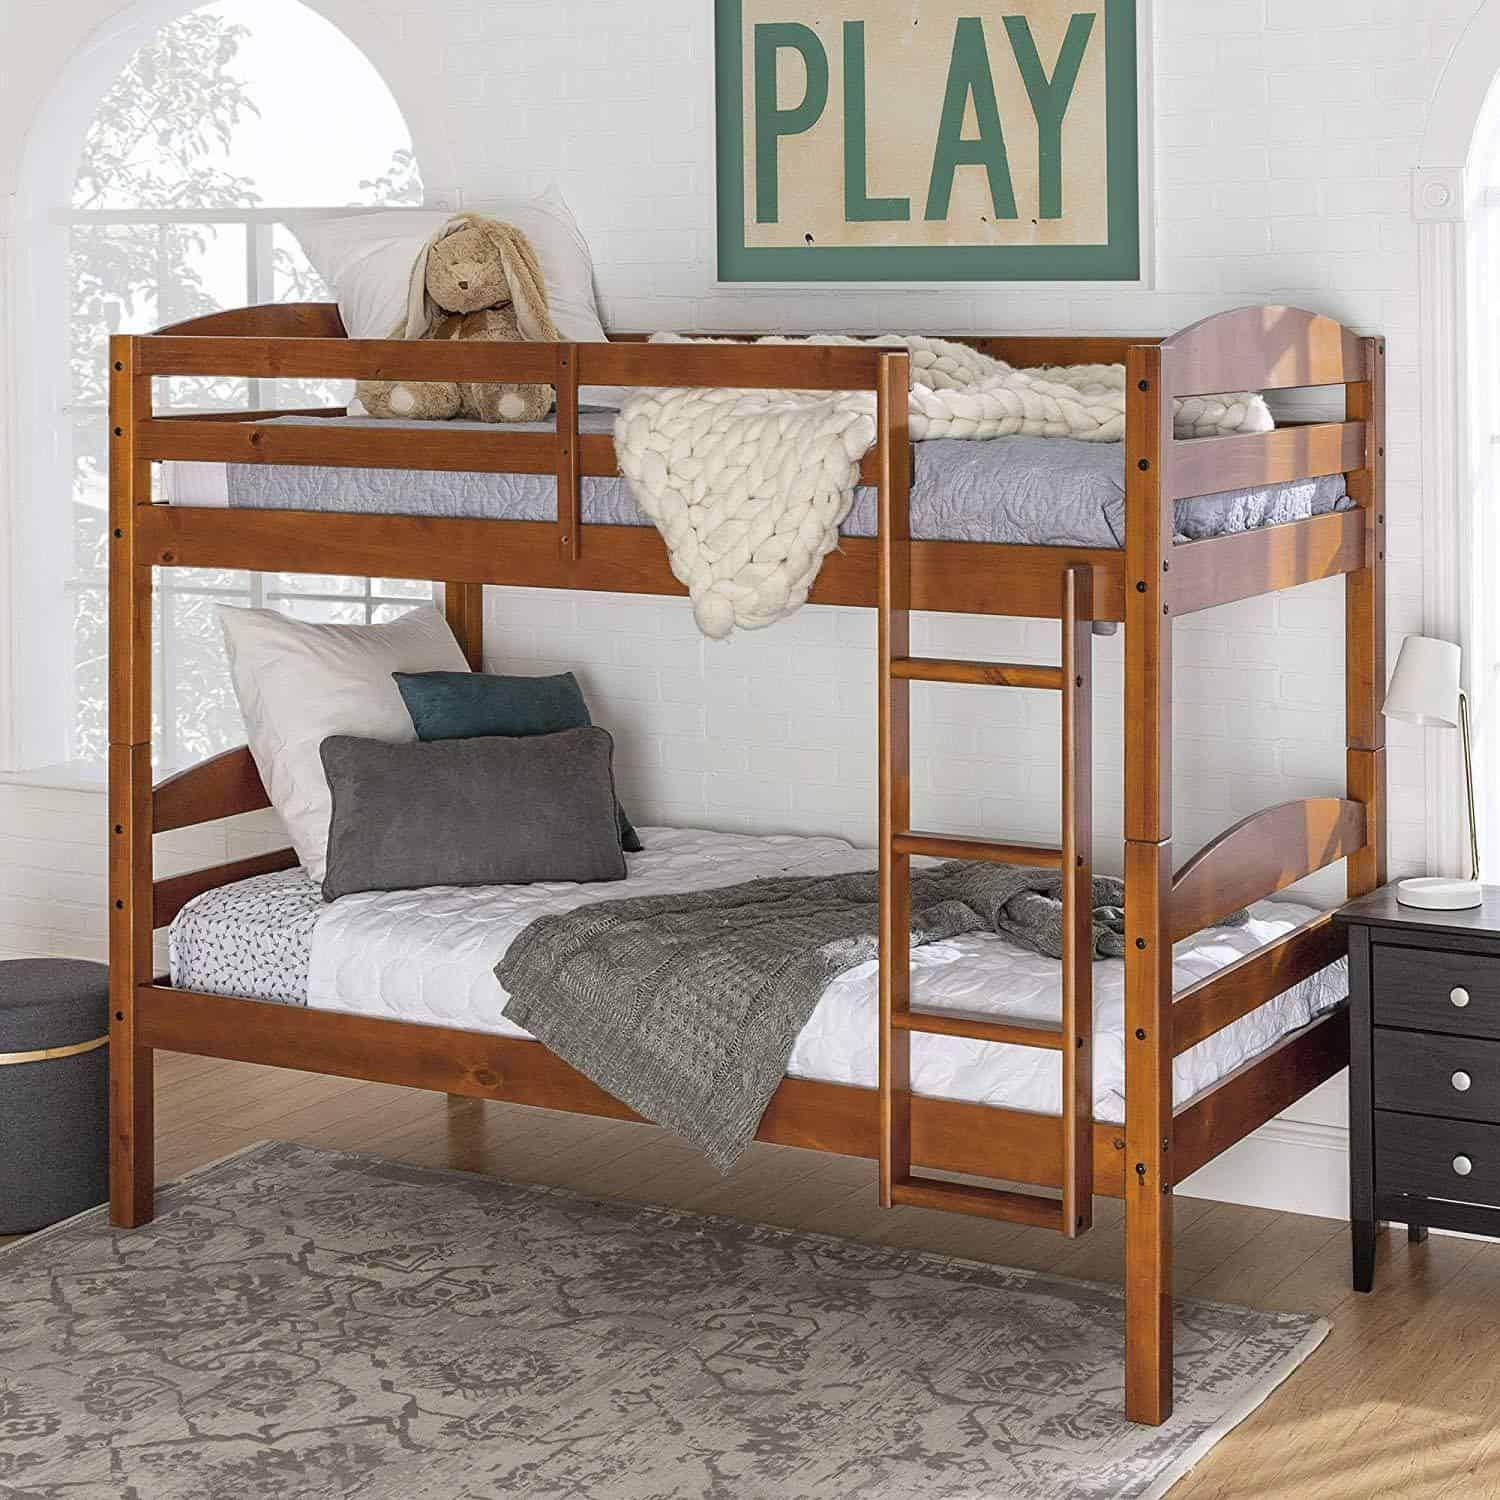 Picture of: 8 Tips To Make Loft Beds And Bunk Beds More Sturdy With Pictures